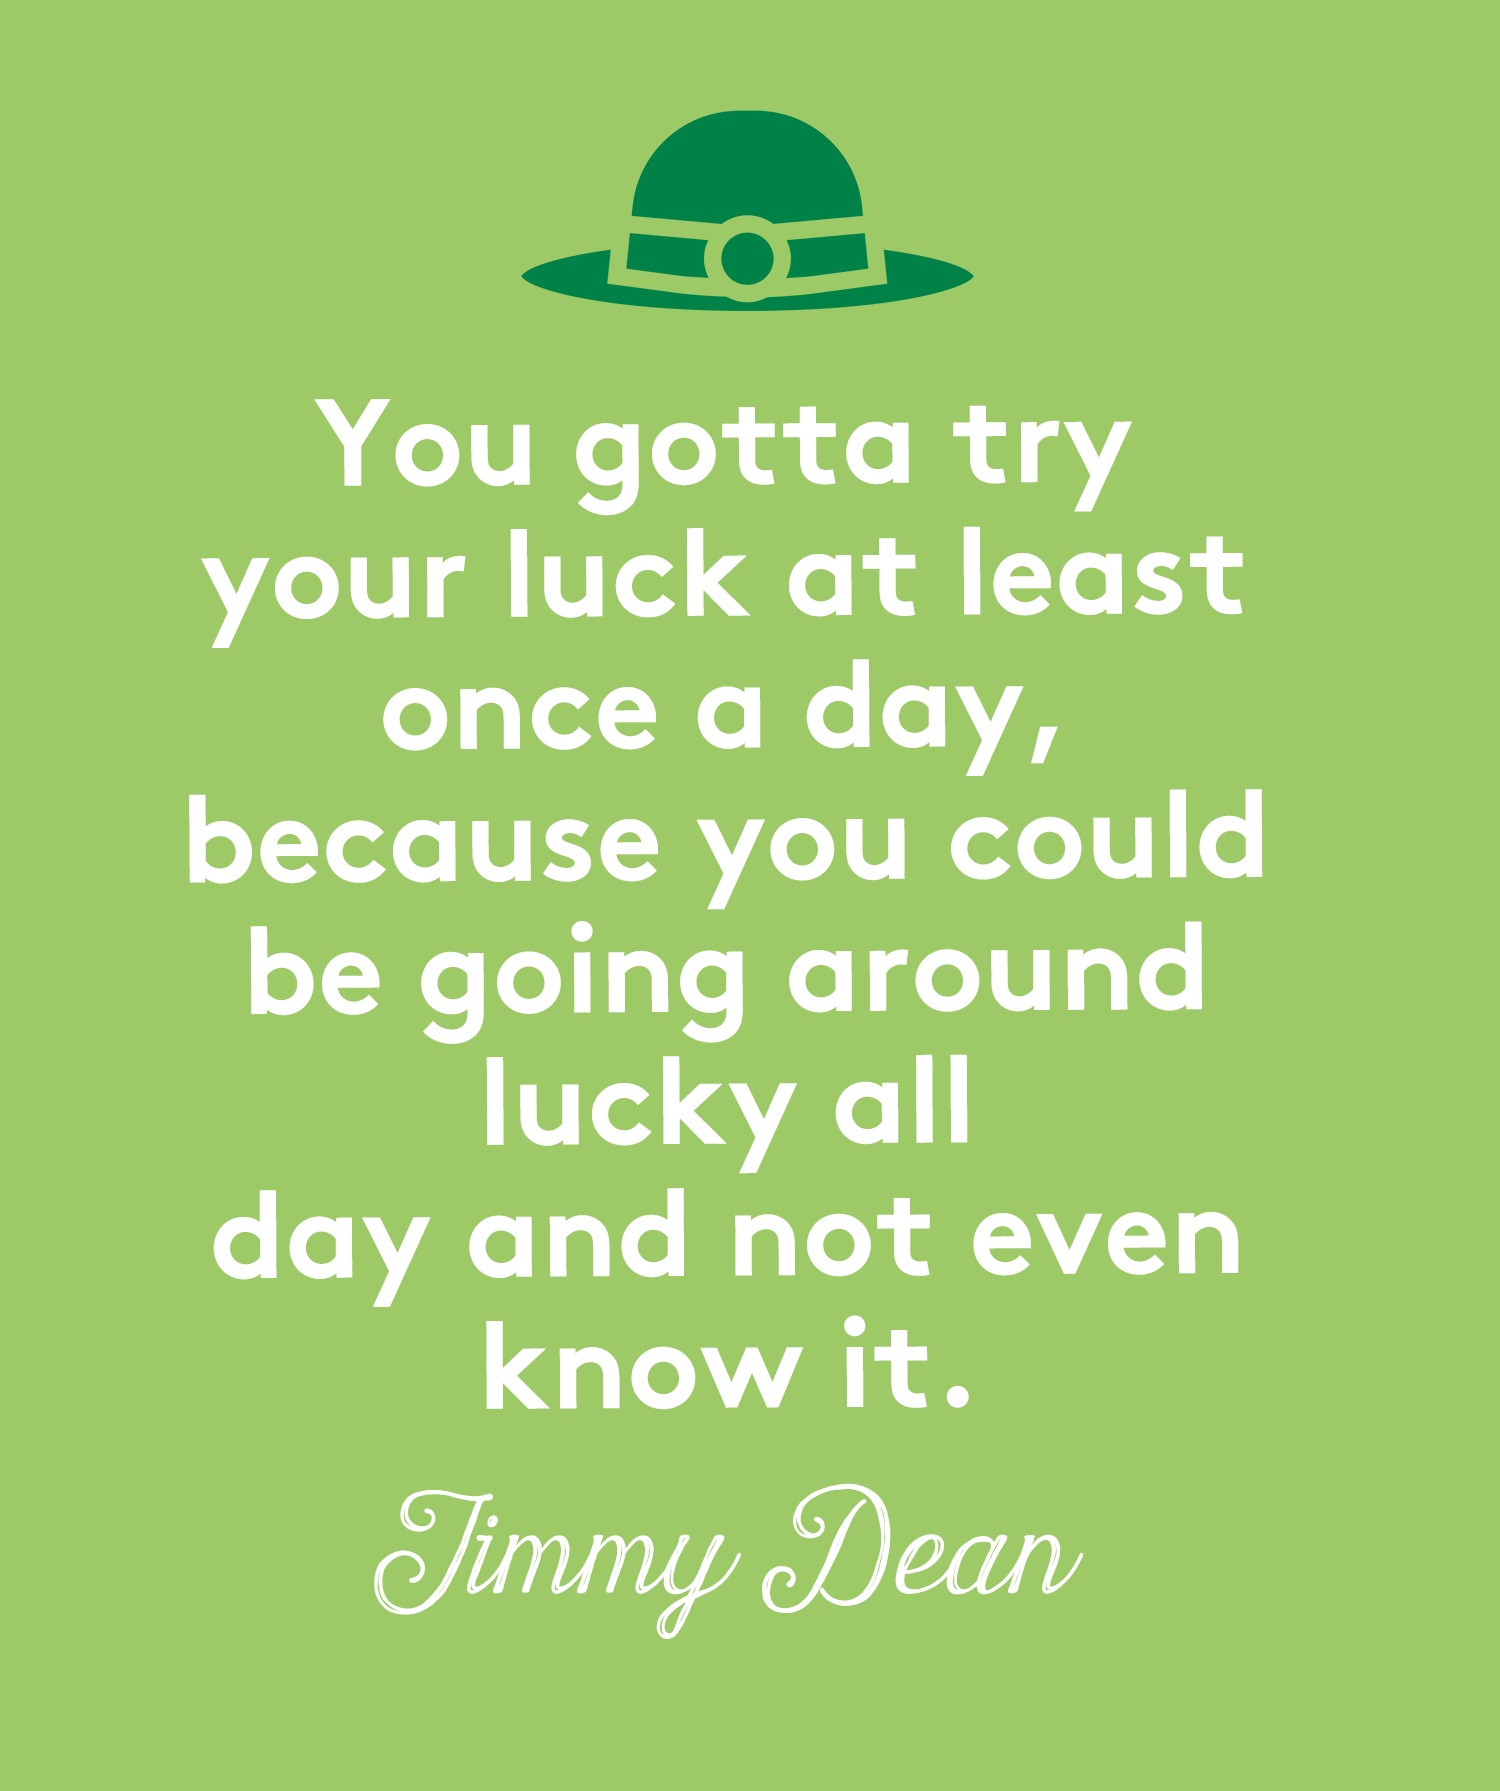 Saint Patrick's Day Quotes  9 St Patrick's Day Memes and Quotes You'll Send to